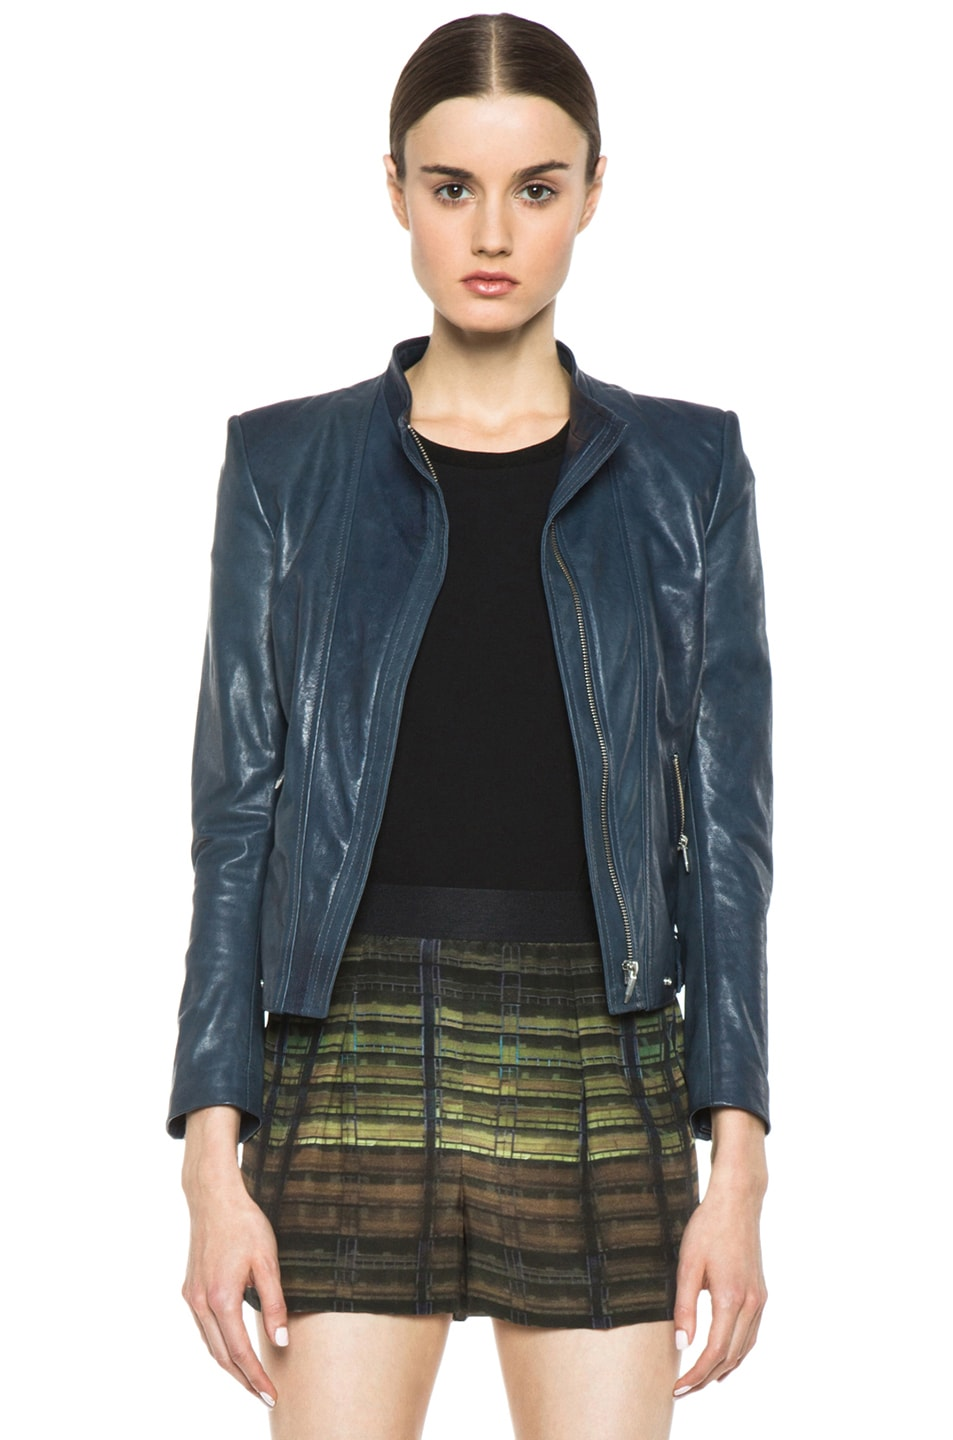 afff47e757 Image 1 of Theyskens' Theory Nomi Janner Lambskin Leather Jacket in Baltic  Teal